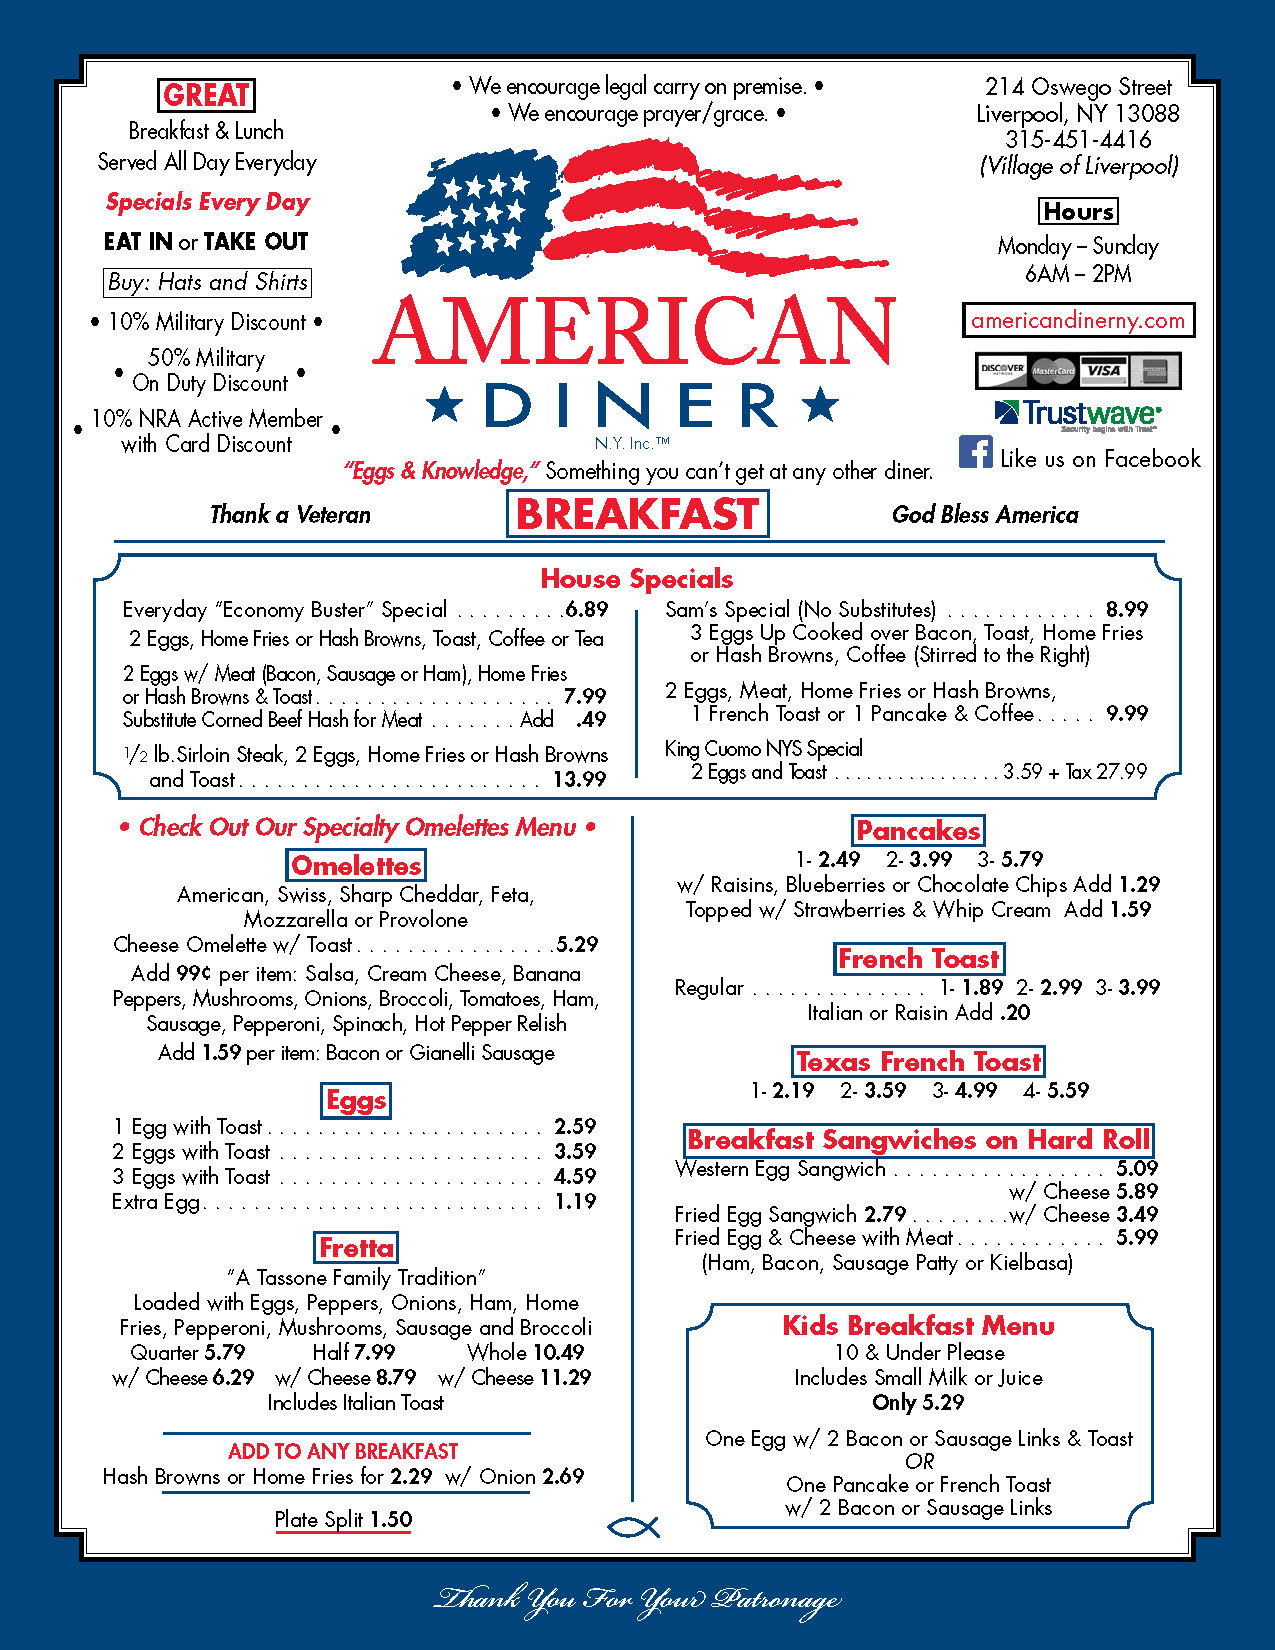 image regarding Printable Menu named Menu - American Diner Serving Liverpool and Syracuse, NY